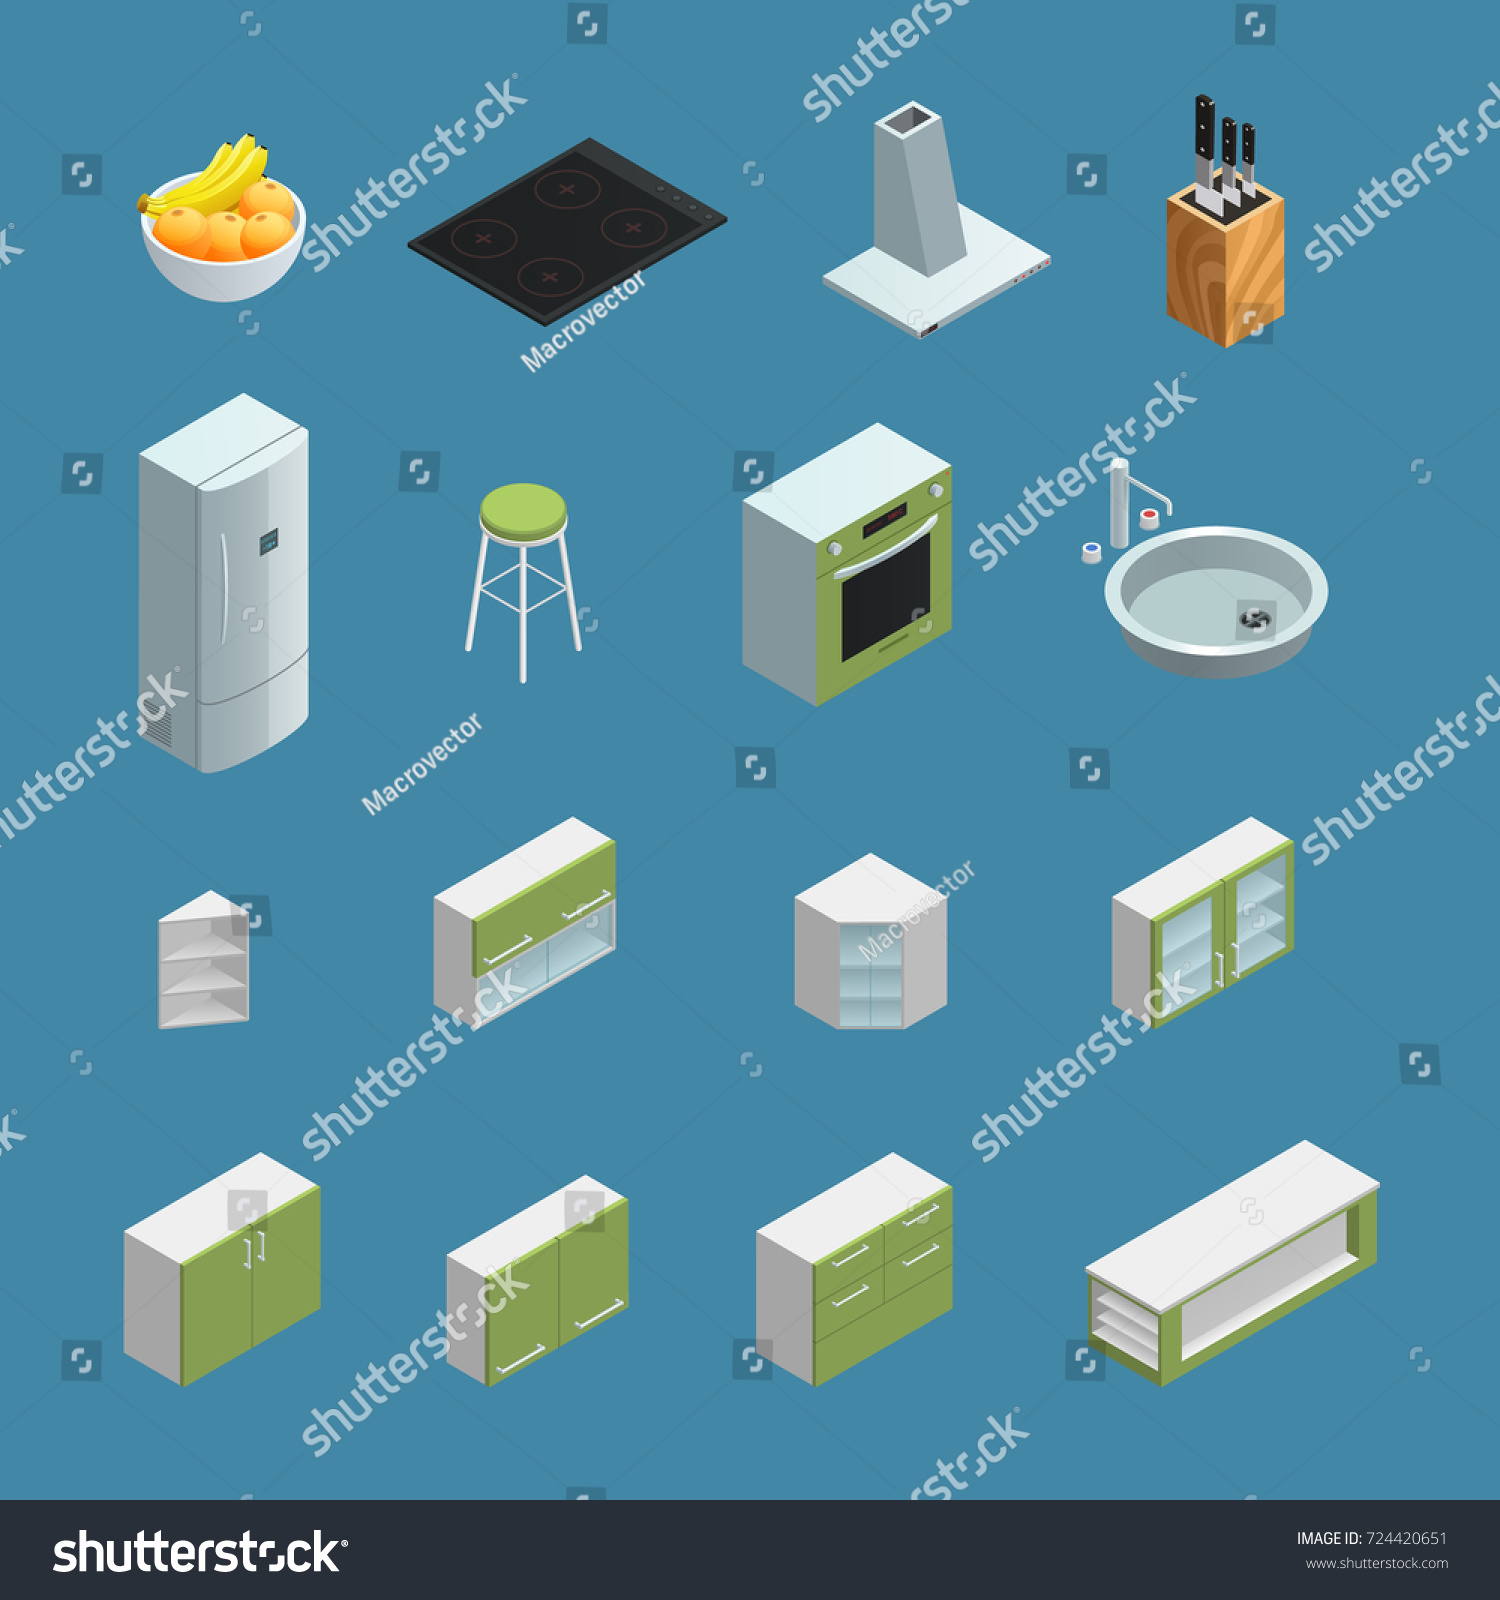 Color Isometric Icons Depicting Elements Kitchen Stock Illustration ...